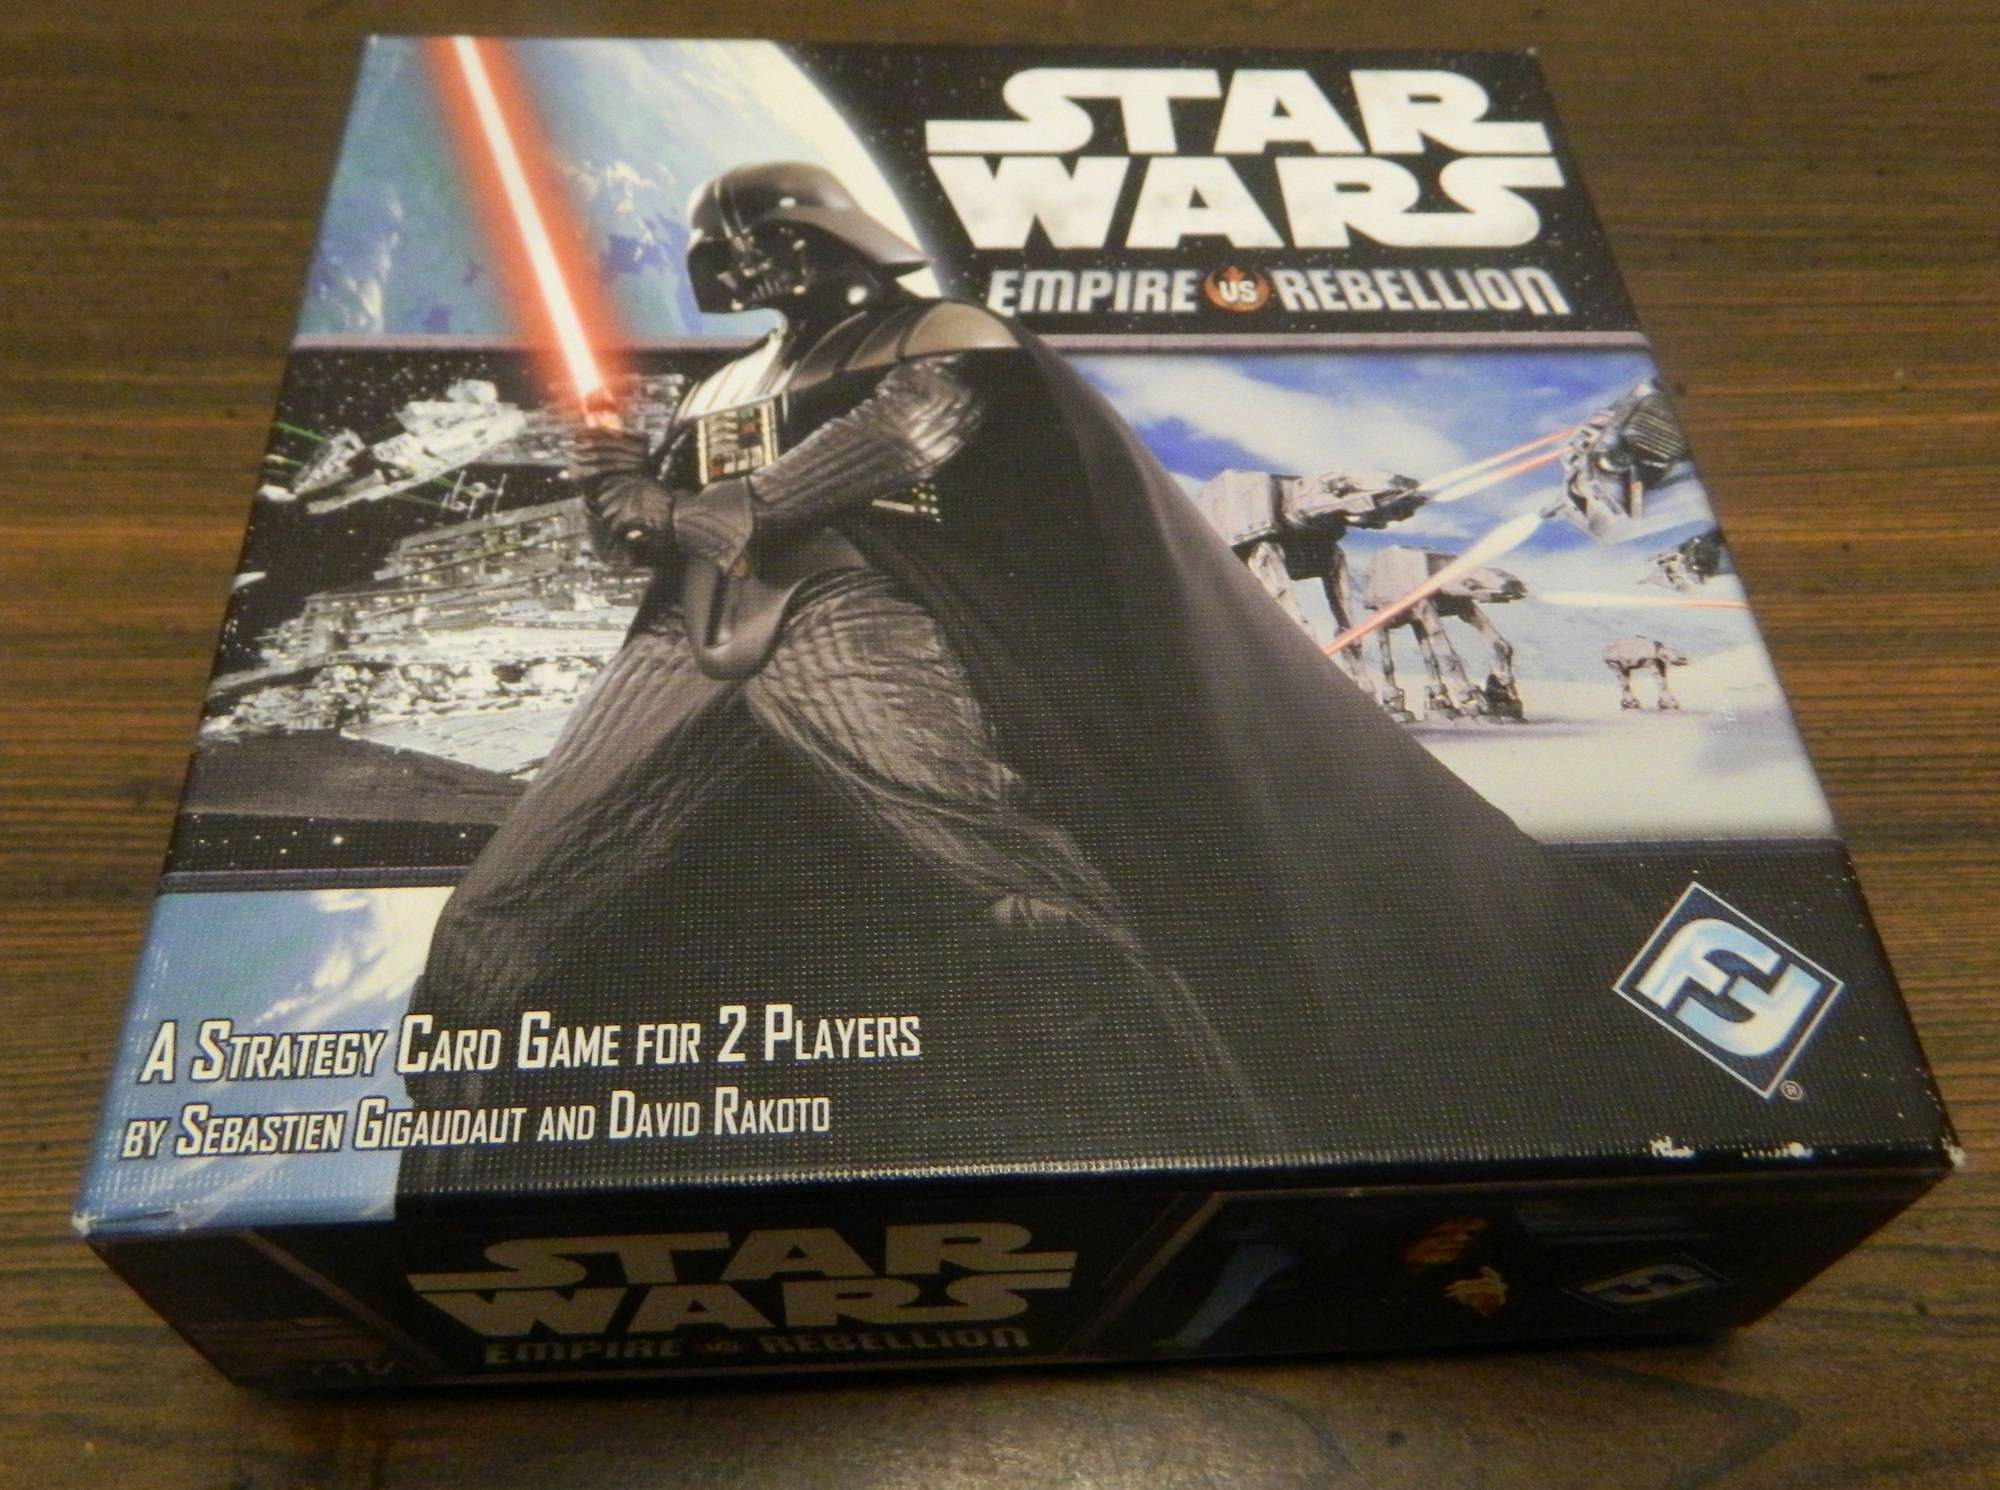 Box for Star Wars Empire vs Rebellion